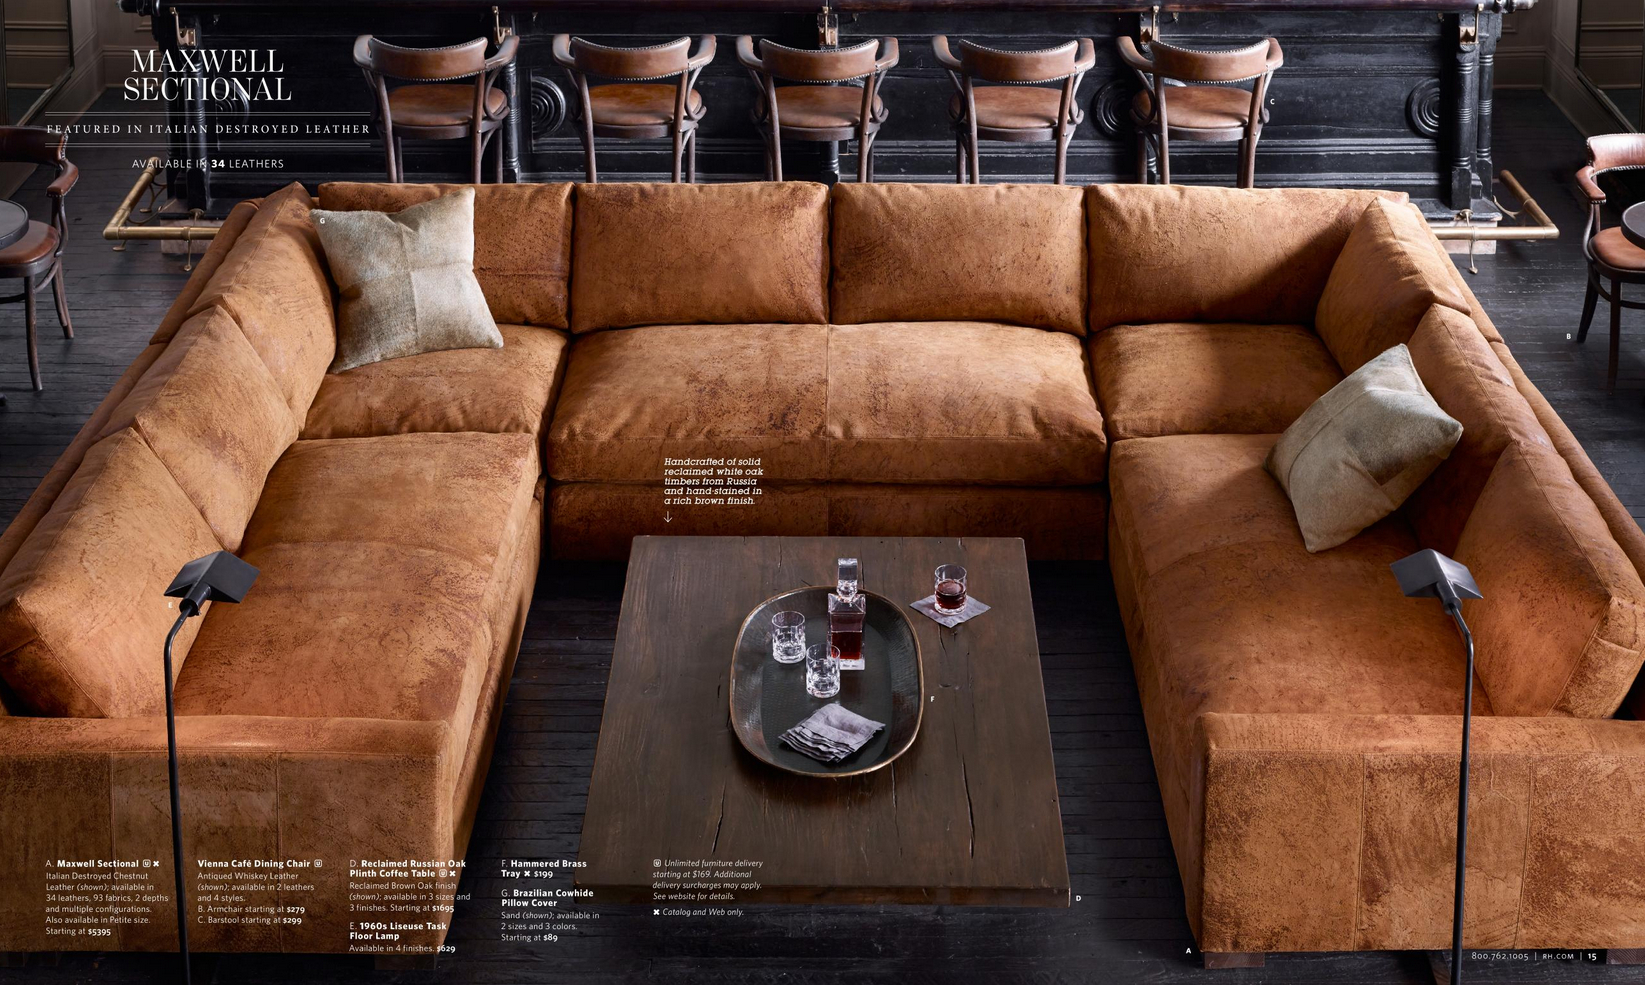 Restoration Hardware Sectional In Italian Destroyed Leather throughout measurements 1645 X 985